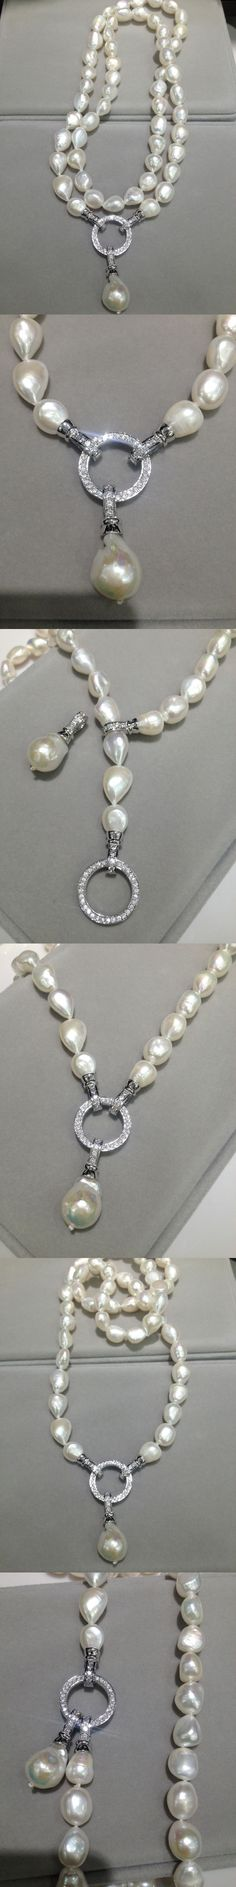 9b294f4e6 Multi wear Long FreshWater Pearl Necklace Natural 10-11MM 80CM Baroque Long Pearl  Necklace Fashion